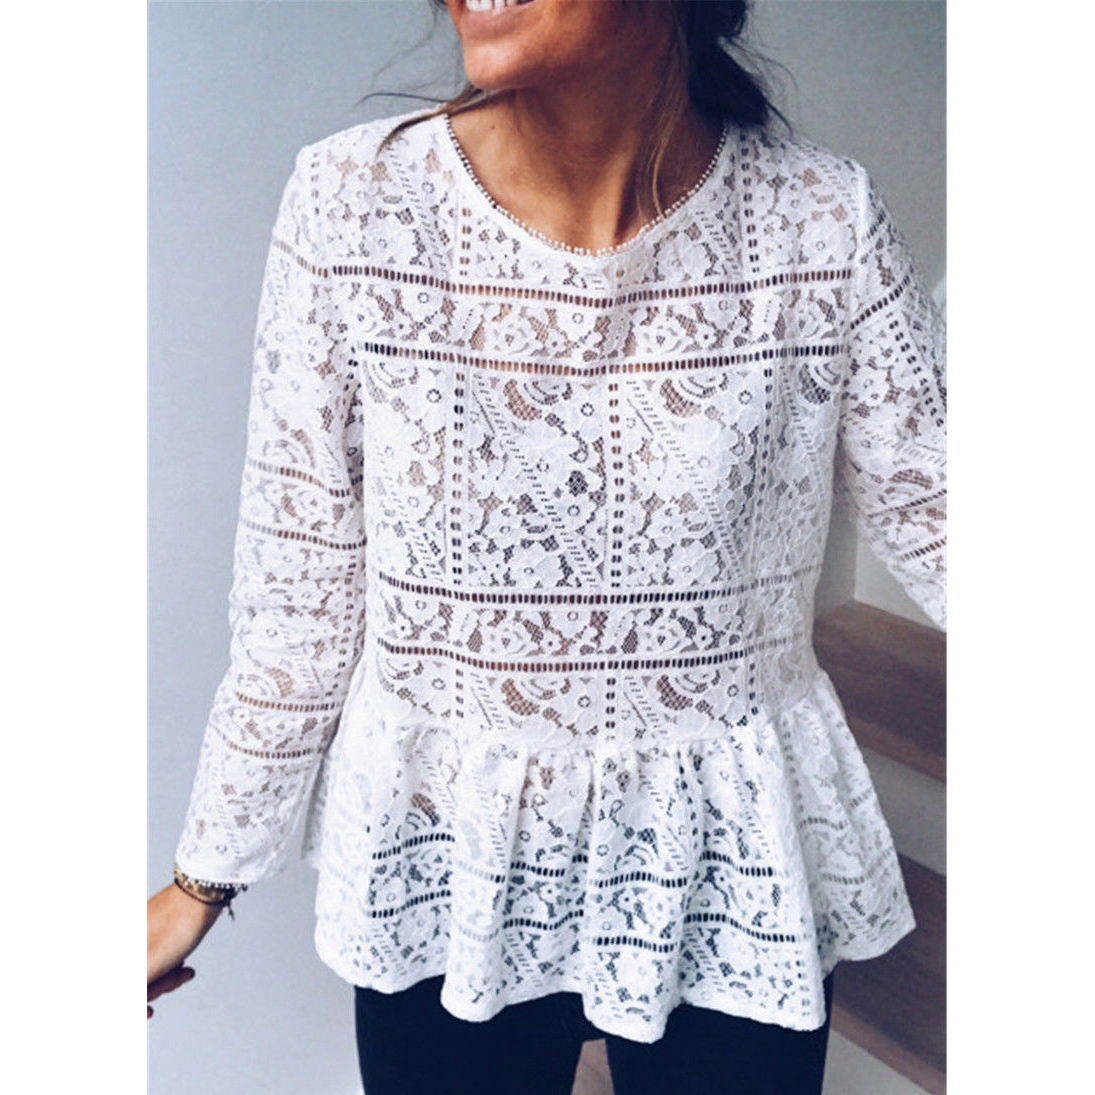 Boho Style Summer Loose Casual White Lace Blouse Women Chiffon Ruffled Embroider Shirt Tops Femme Blusas Mujer